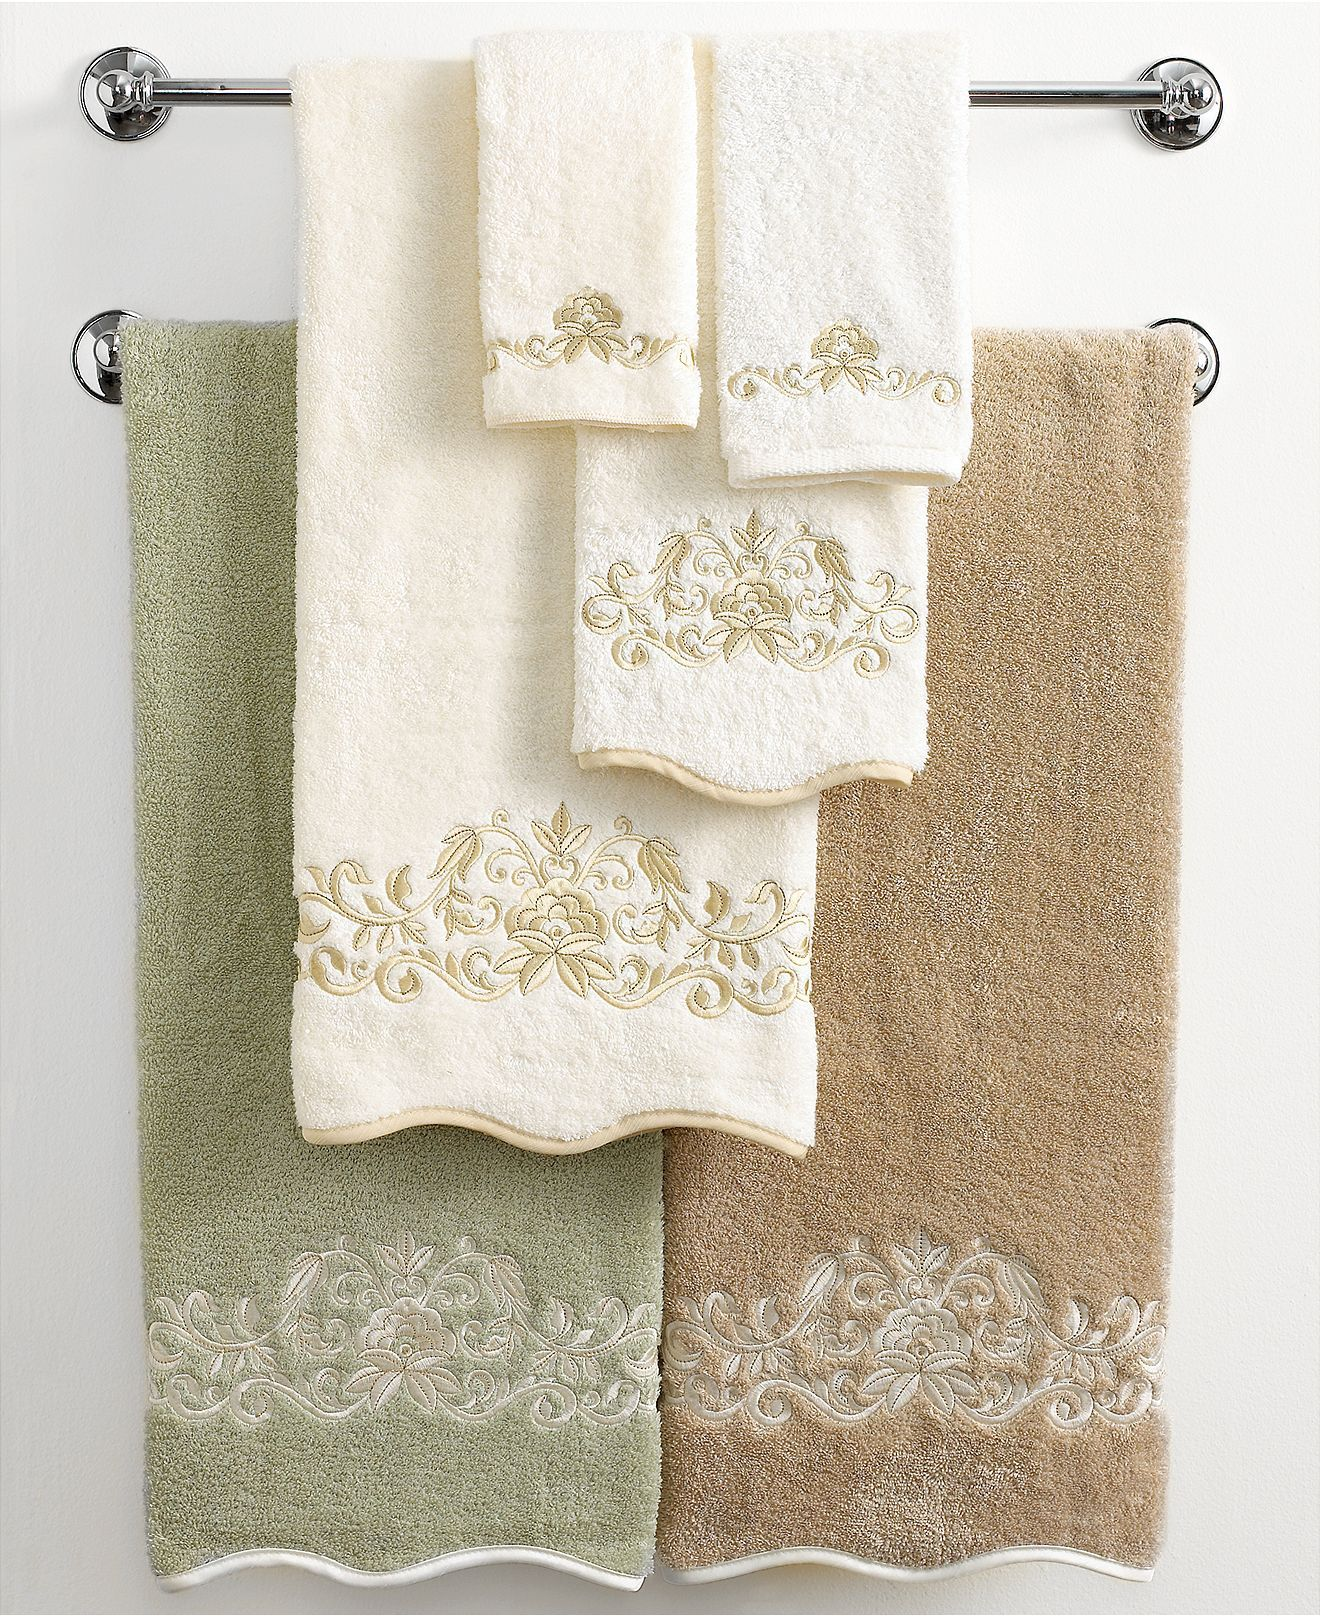 Macys Bath Towels Captivating Avanti Bath Towels Venetian Scroll Collection  Bath Towels  Bed Design Ideas